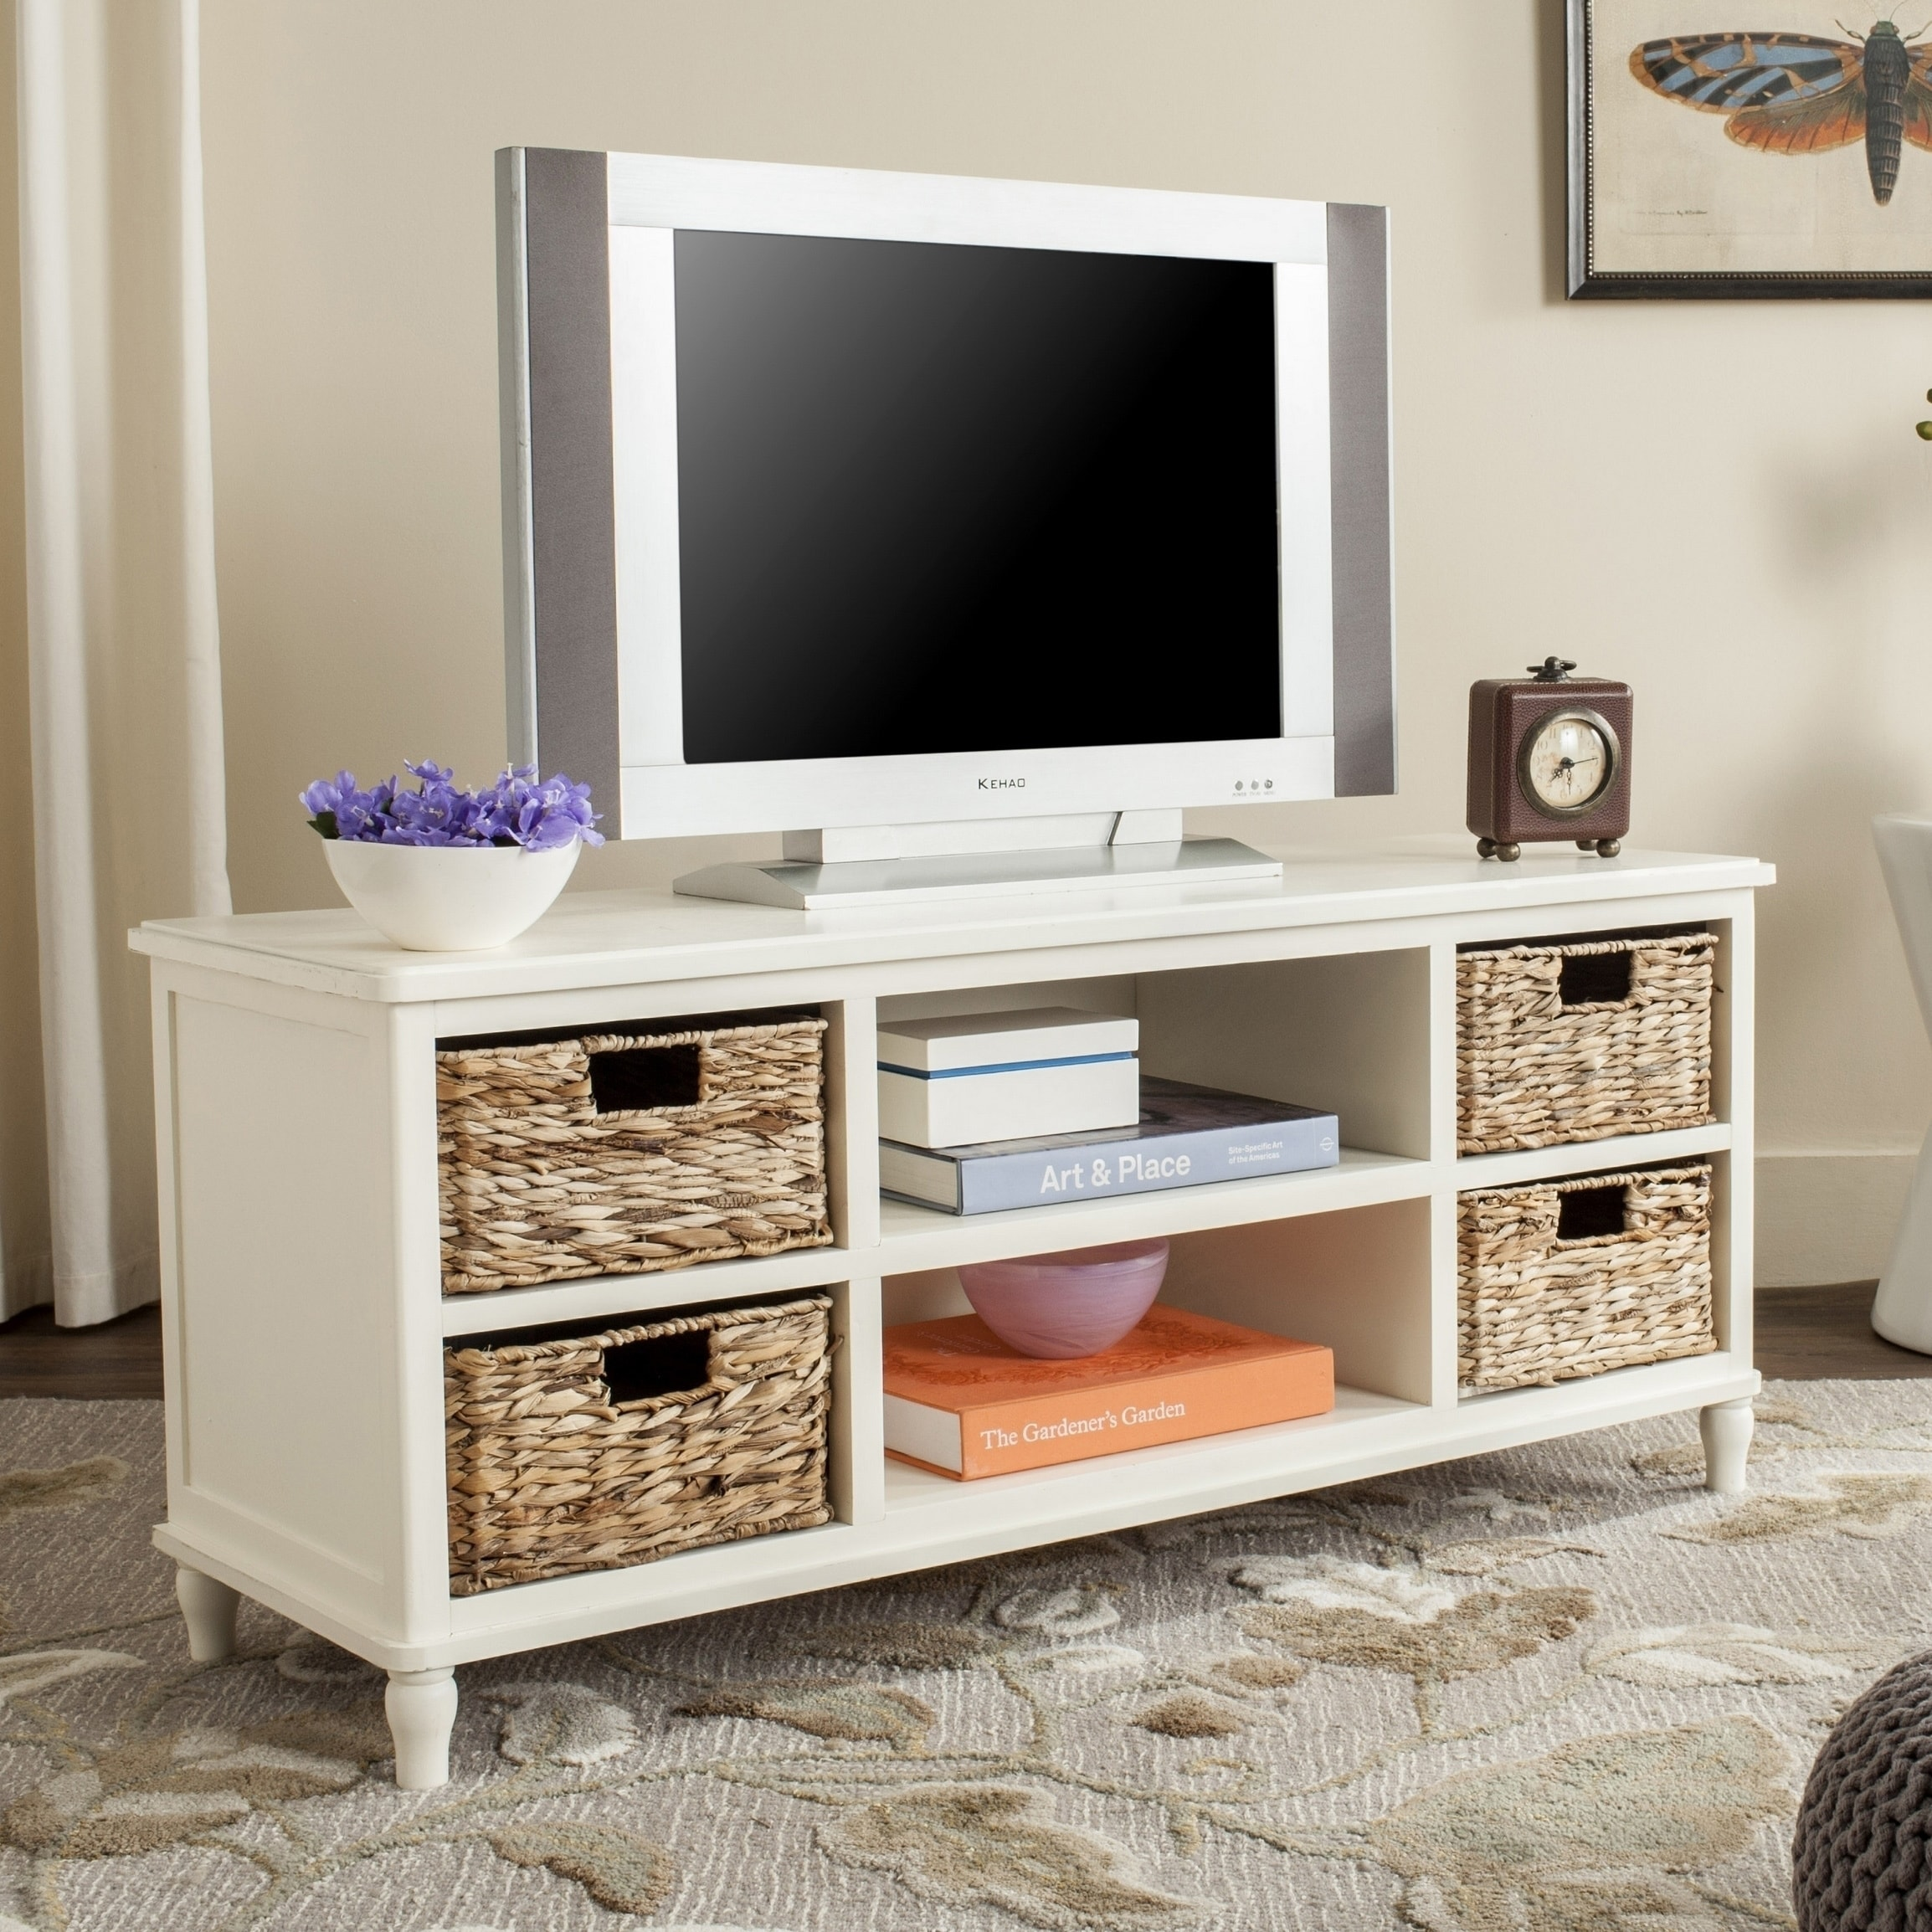 on sale daa5a 600f7 Heyer Distressed White Entertainment Unit